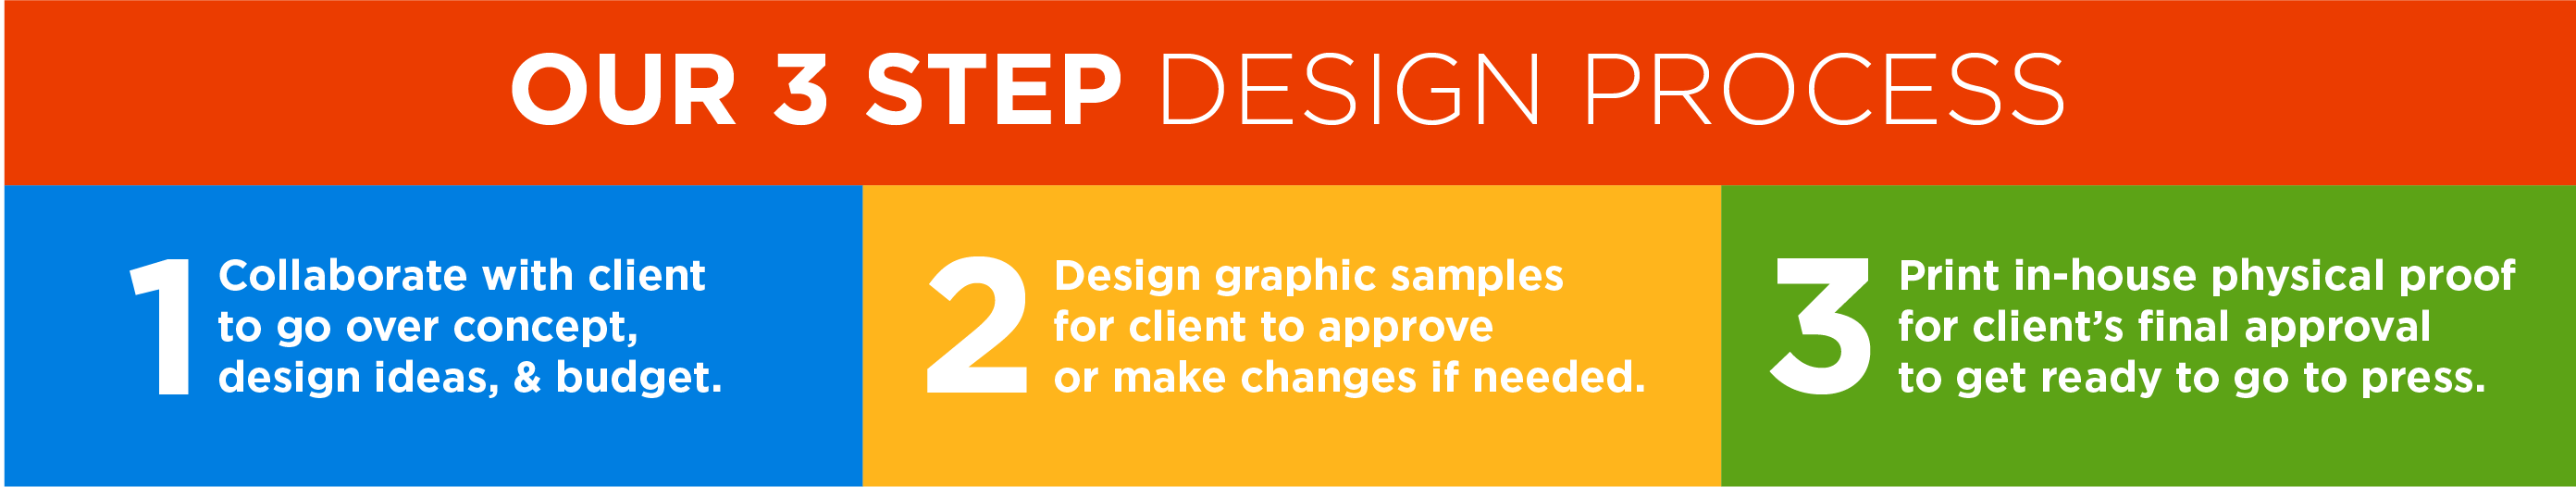 1. collaborate with client to go over concept, design ideas, and budget 2. design graphic samples for client to approve or make changes if needed 3. print in-house physical proof for client's final approval to get ready to go to press